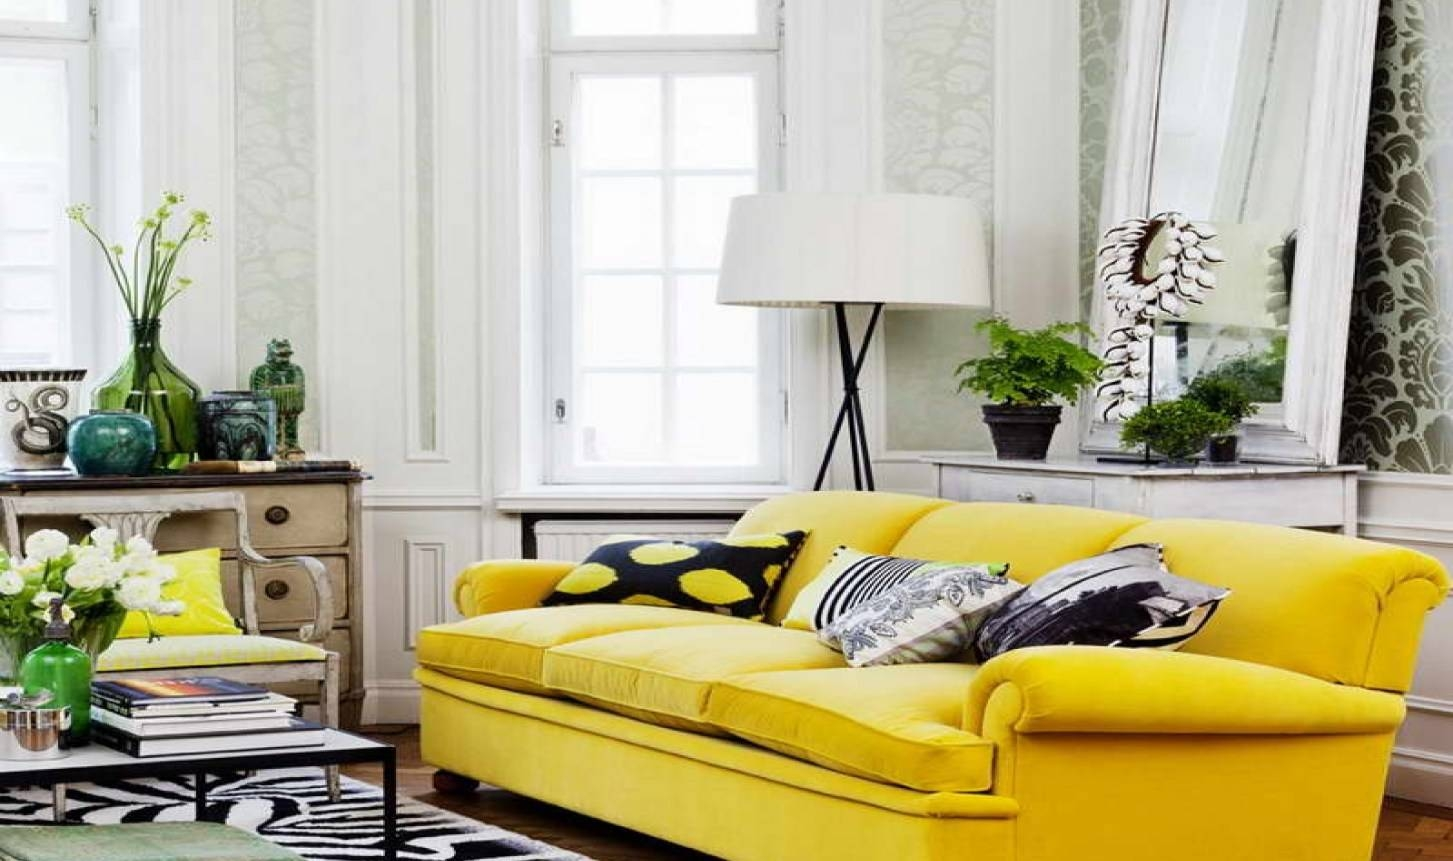 Amiable Gray And Yellow Accent Chairs Tags : Gray And Yellow regarding Yellow Sofa Chairs (Image 4 of 30)